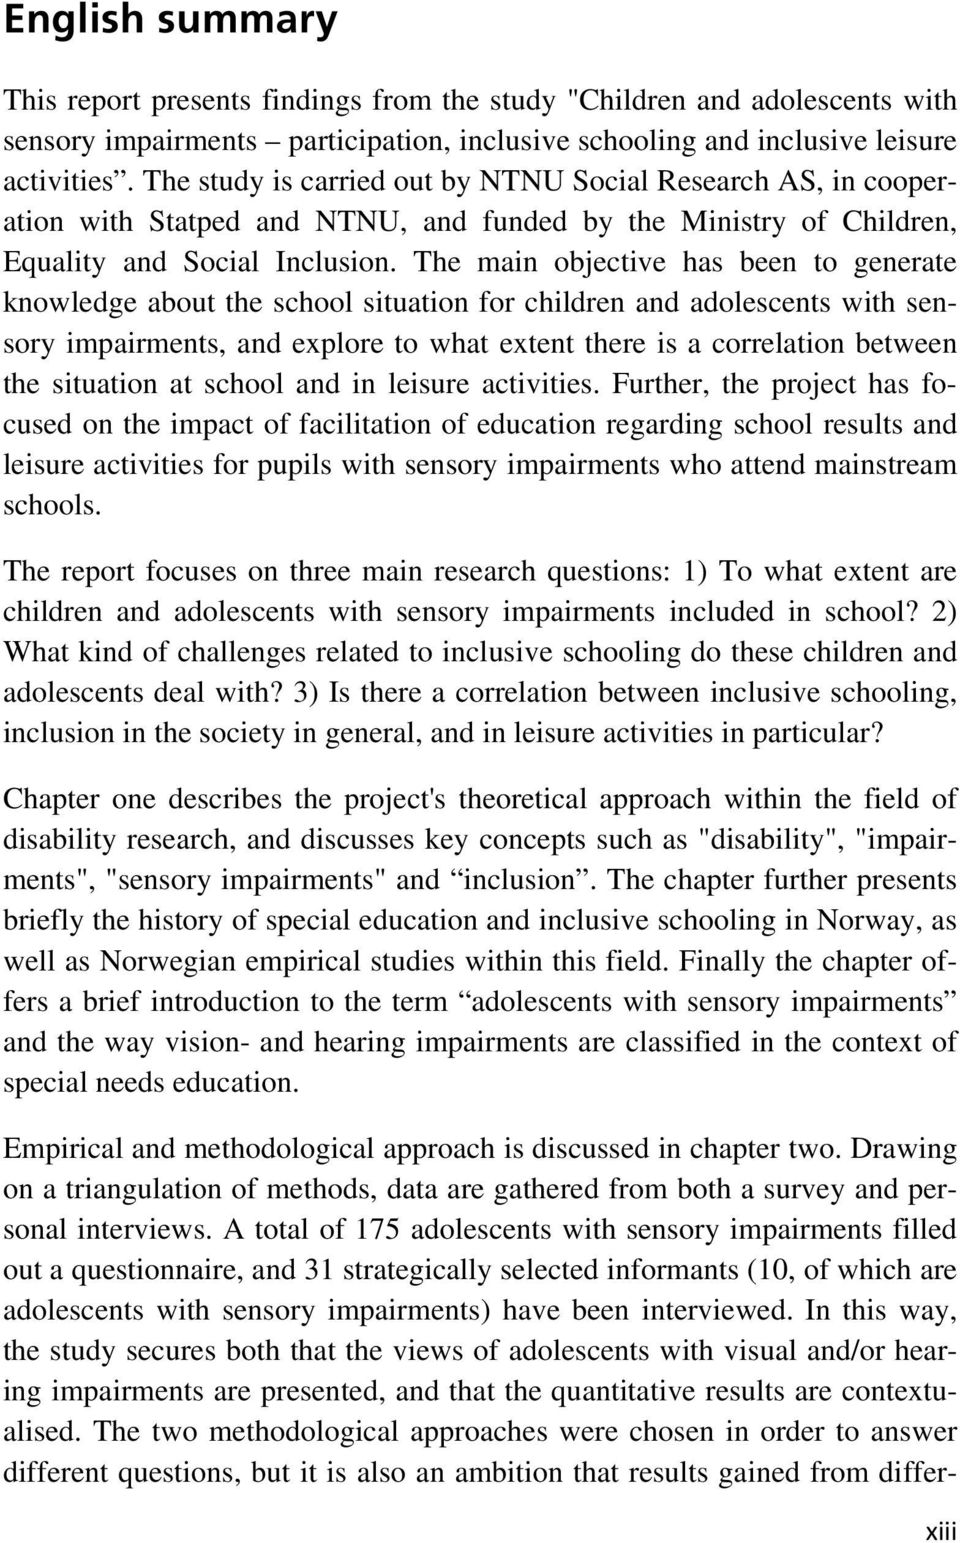 The main objective has been to generate knowledge about the school situation for children and adolescents with sensory impairments, and explore to what extent there is a correlation between the